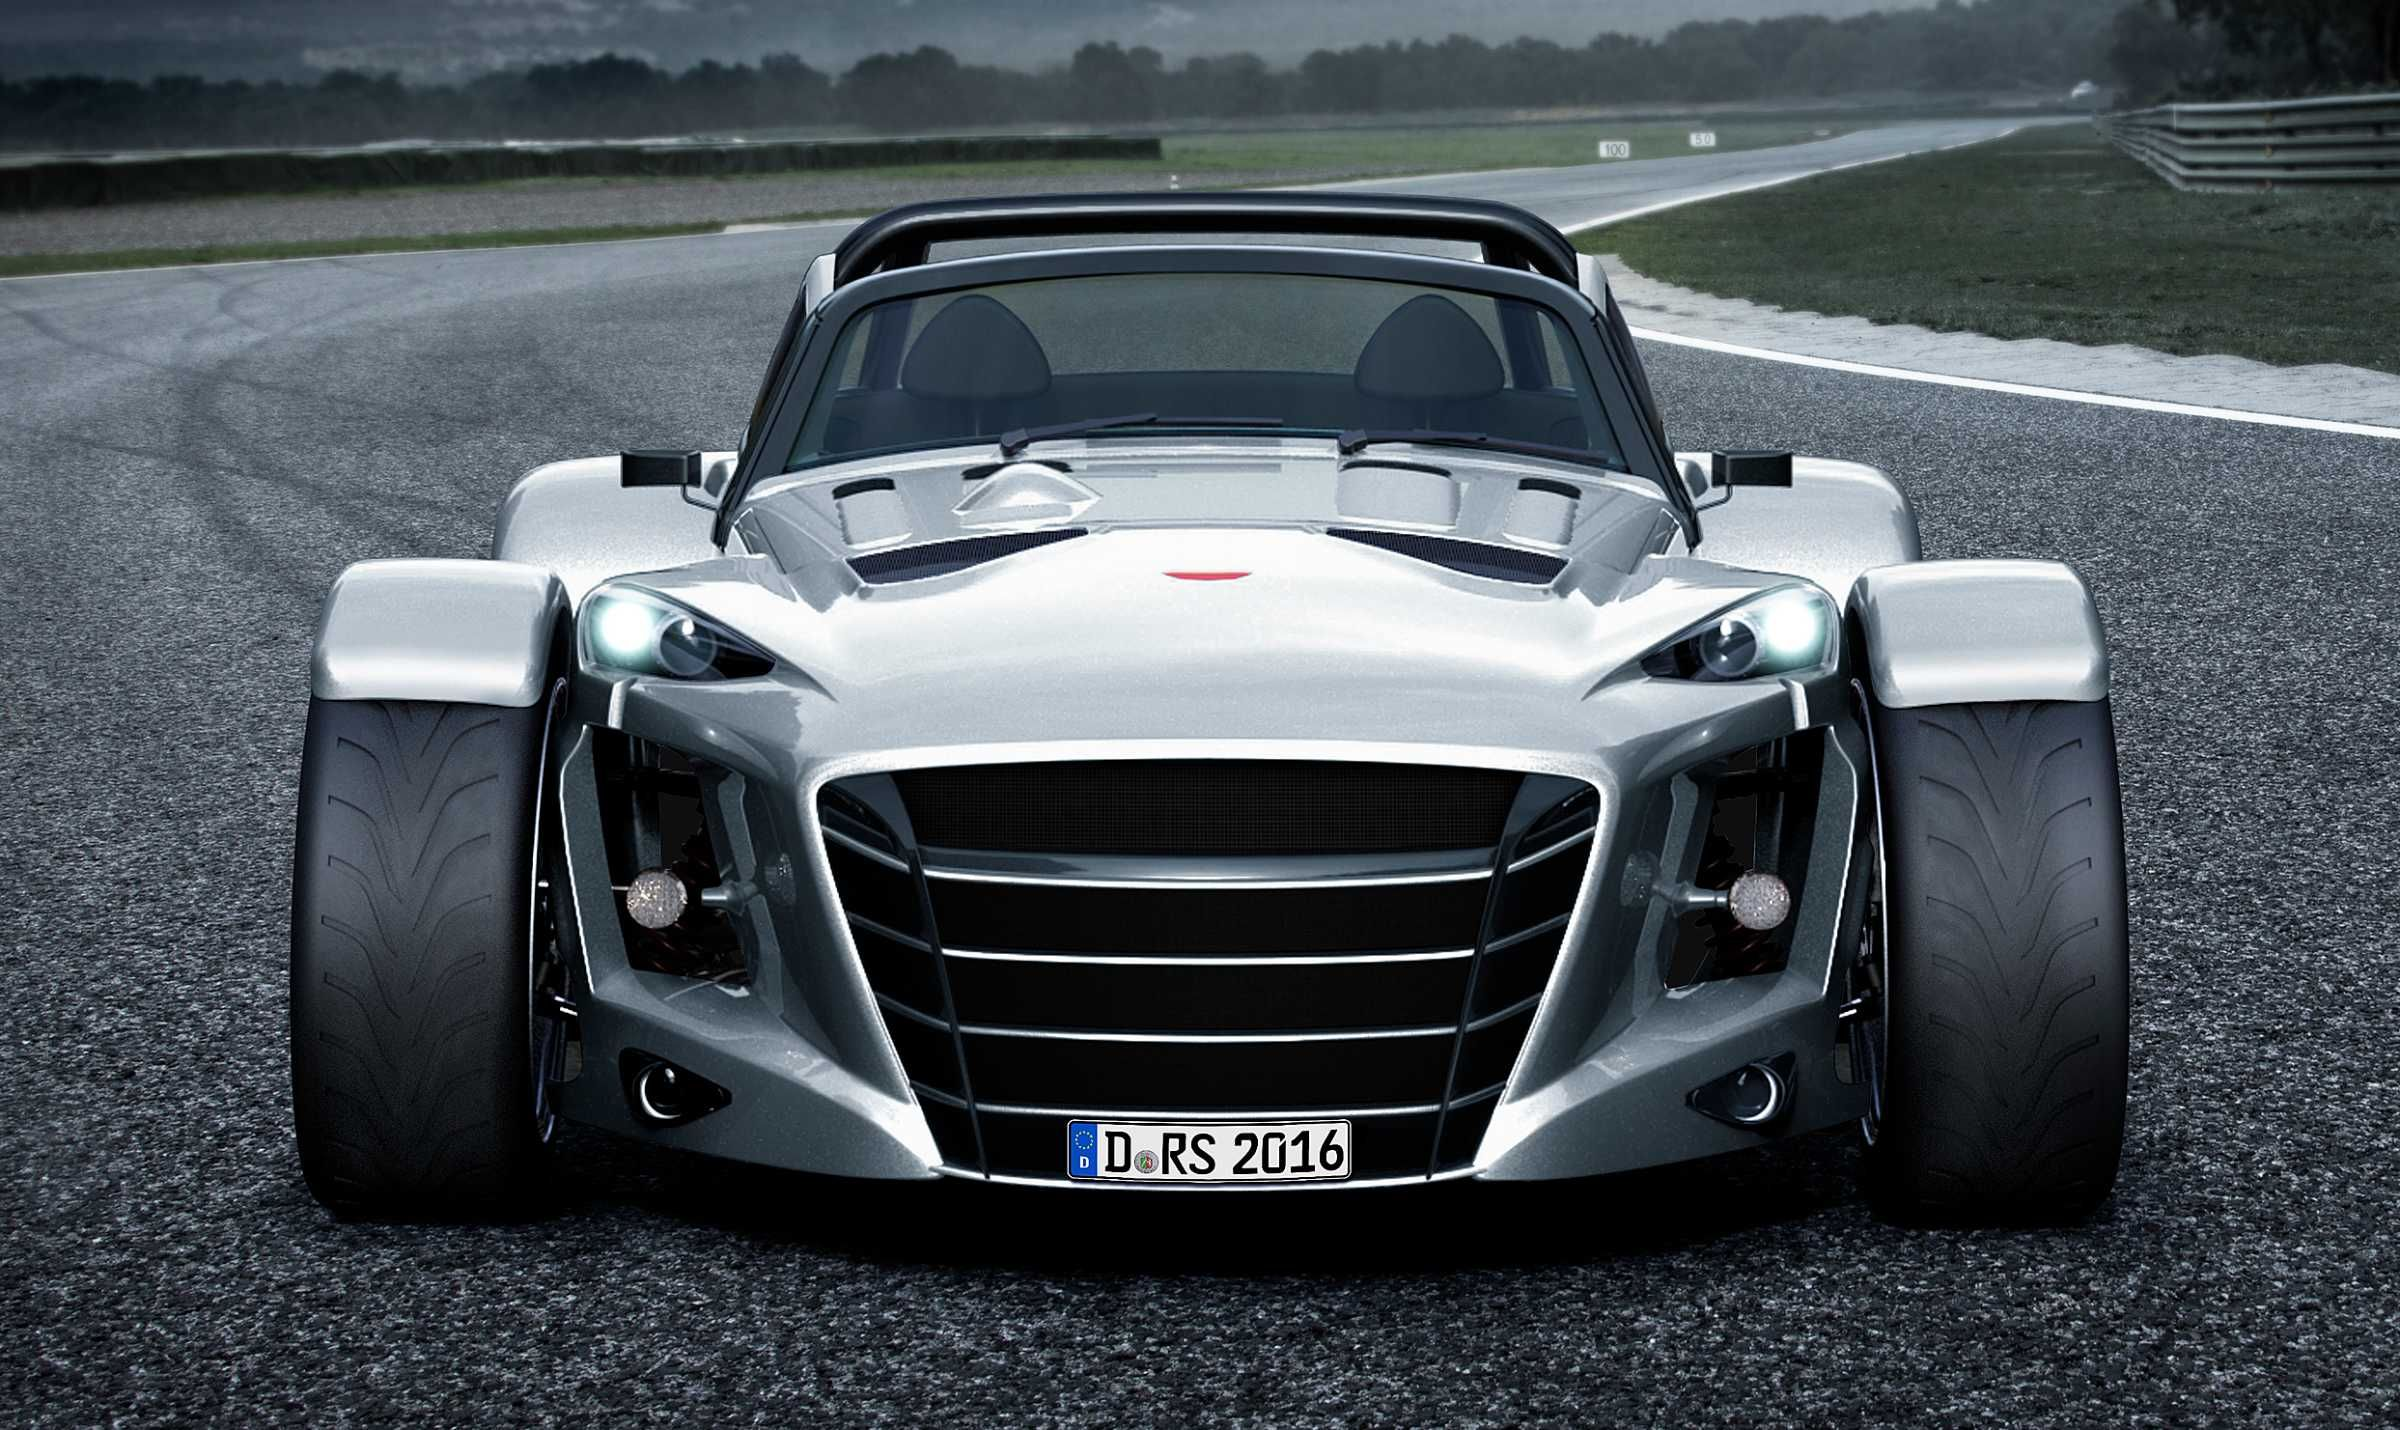 Donkervoort Reveals Their New Track Missile The D8 Gto Rs Gto